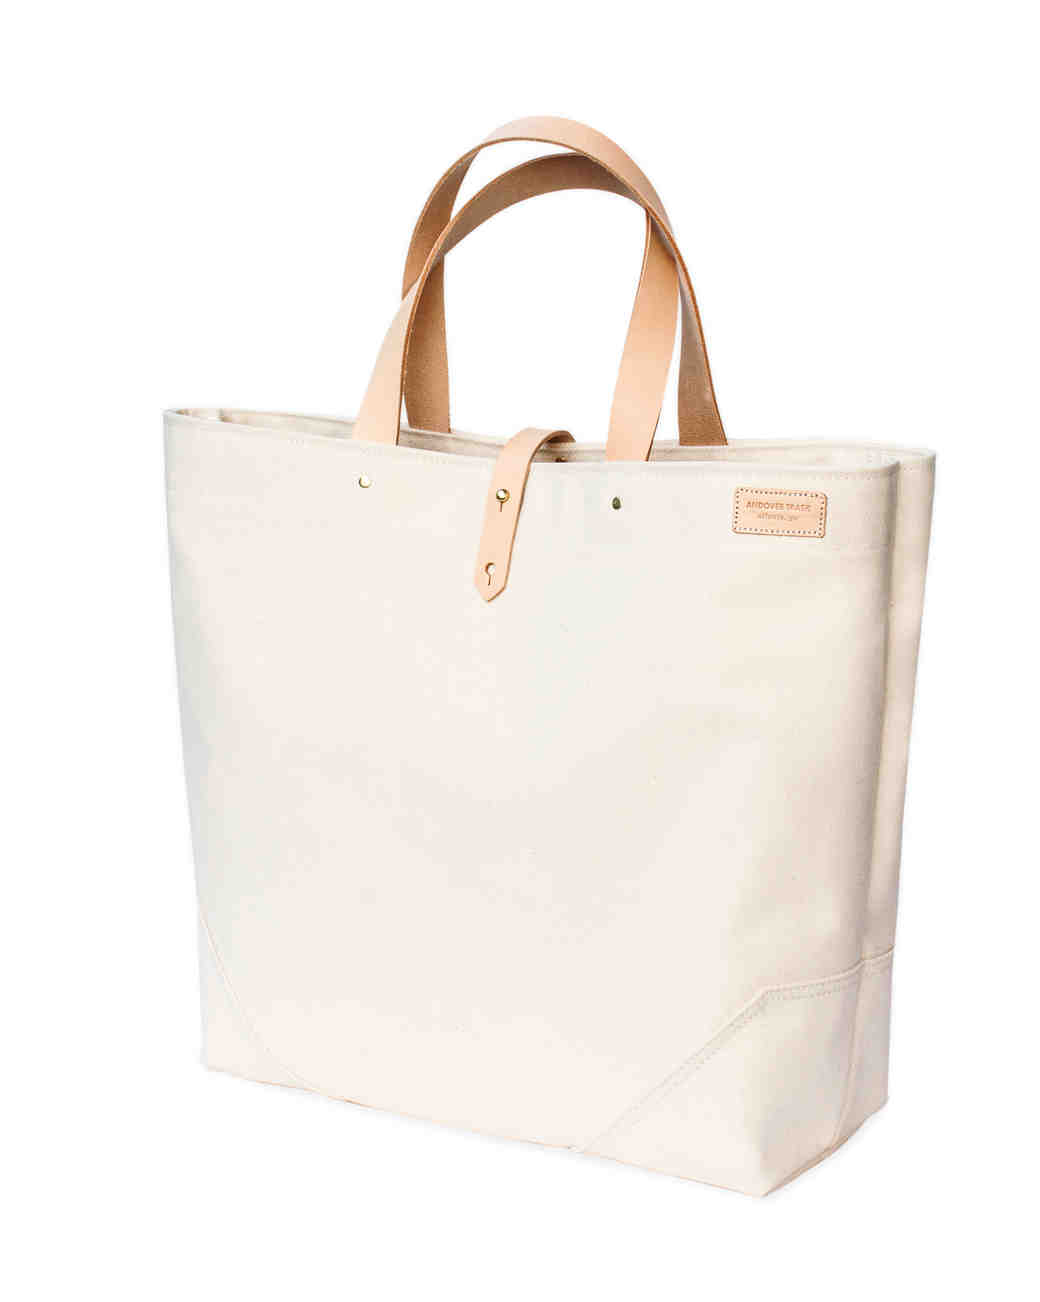 andover-trask-scout-tote---angled.jpg